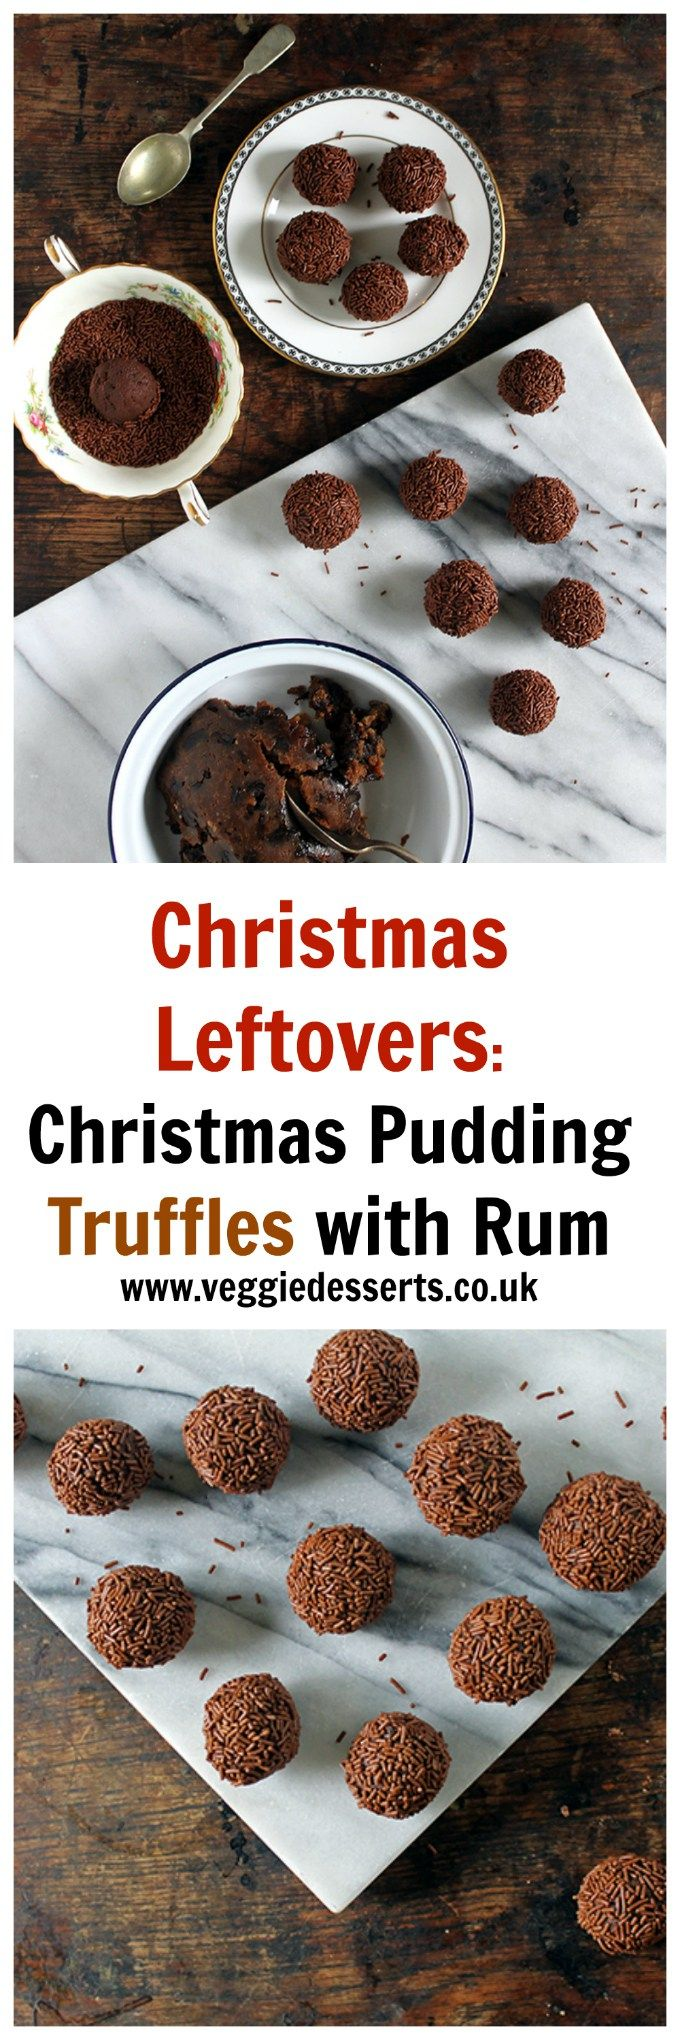 Christmas Leftover Recipes: Christmas Pudding Truffles with Rum | Veggie Desserts Blog  Don't waste food at Christmas! These Christmas leftover recipes show you how to turn leftovers into new meals. Including a Boxing Day Pizza and Christmas Pudding Truff